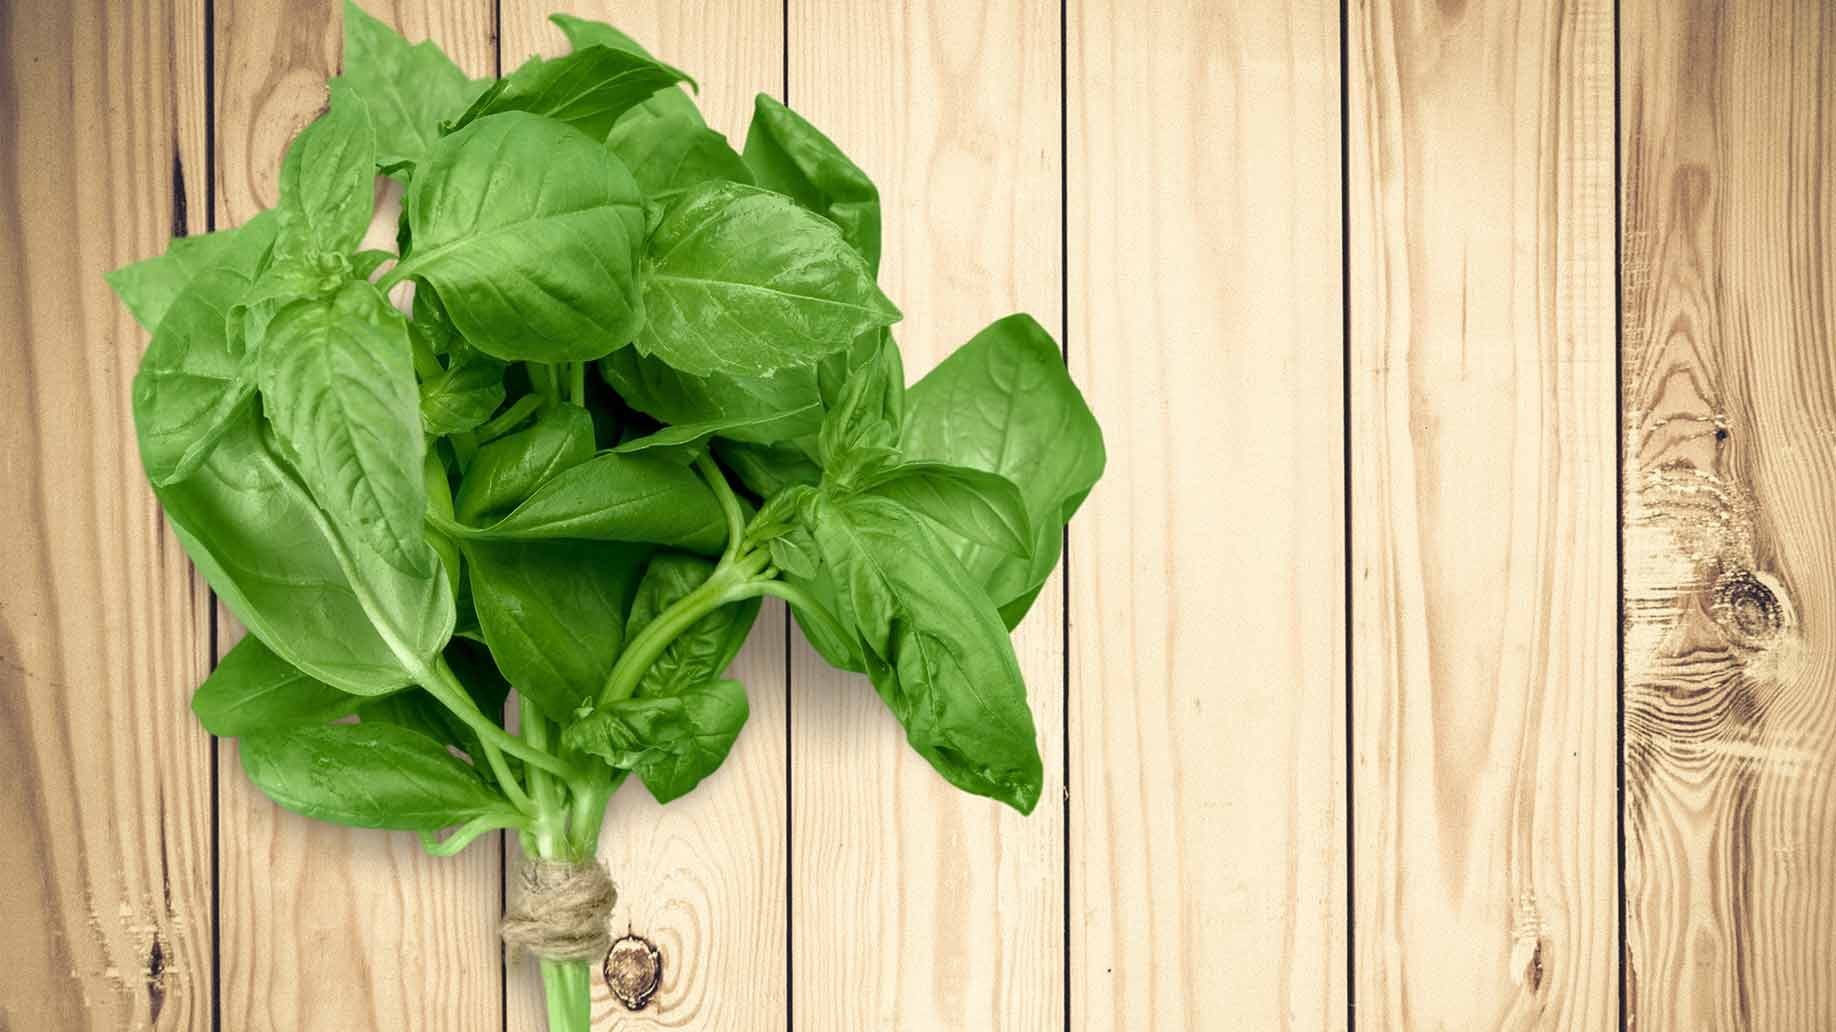 basil herb fresh organic green leaves bunch